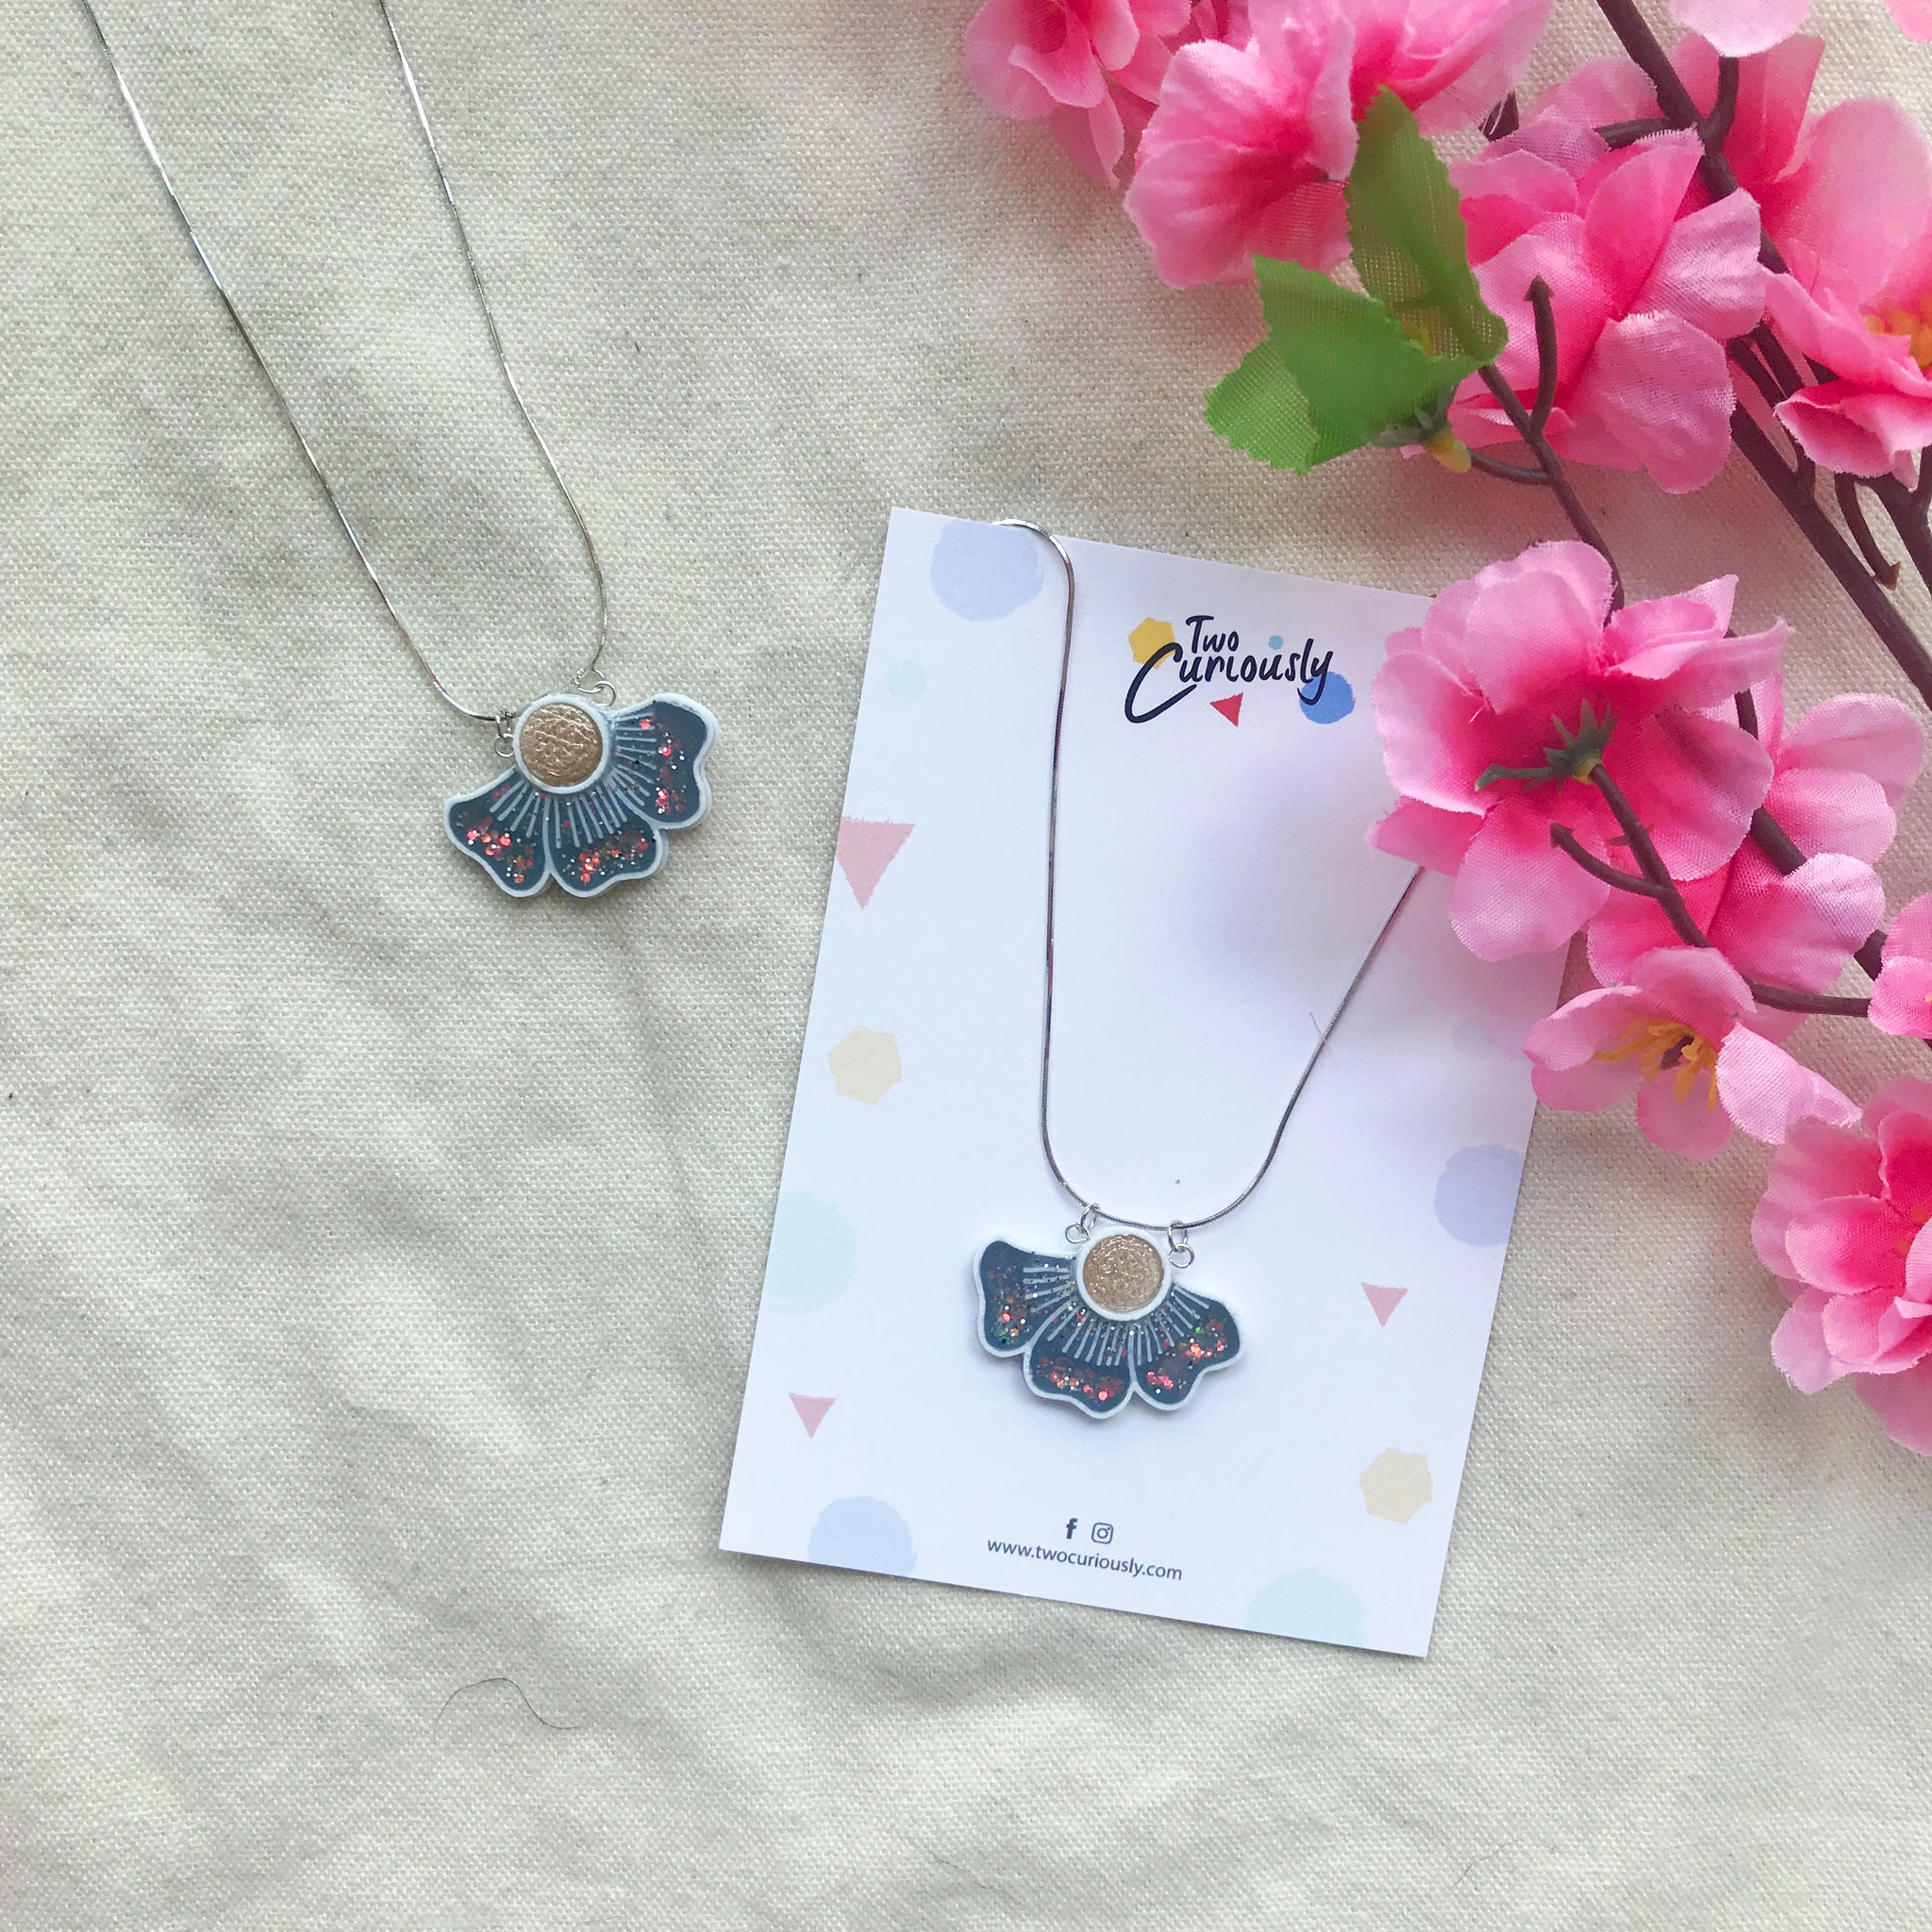 The bloom necklace